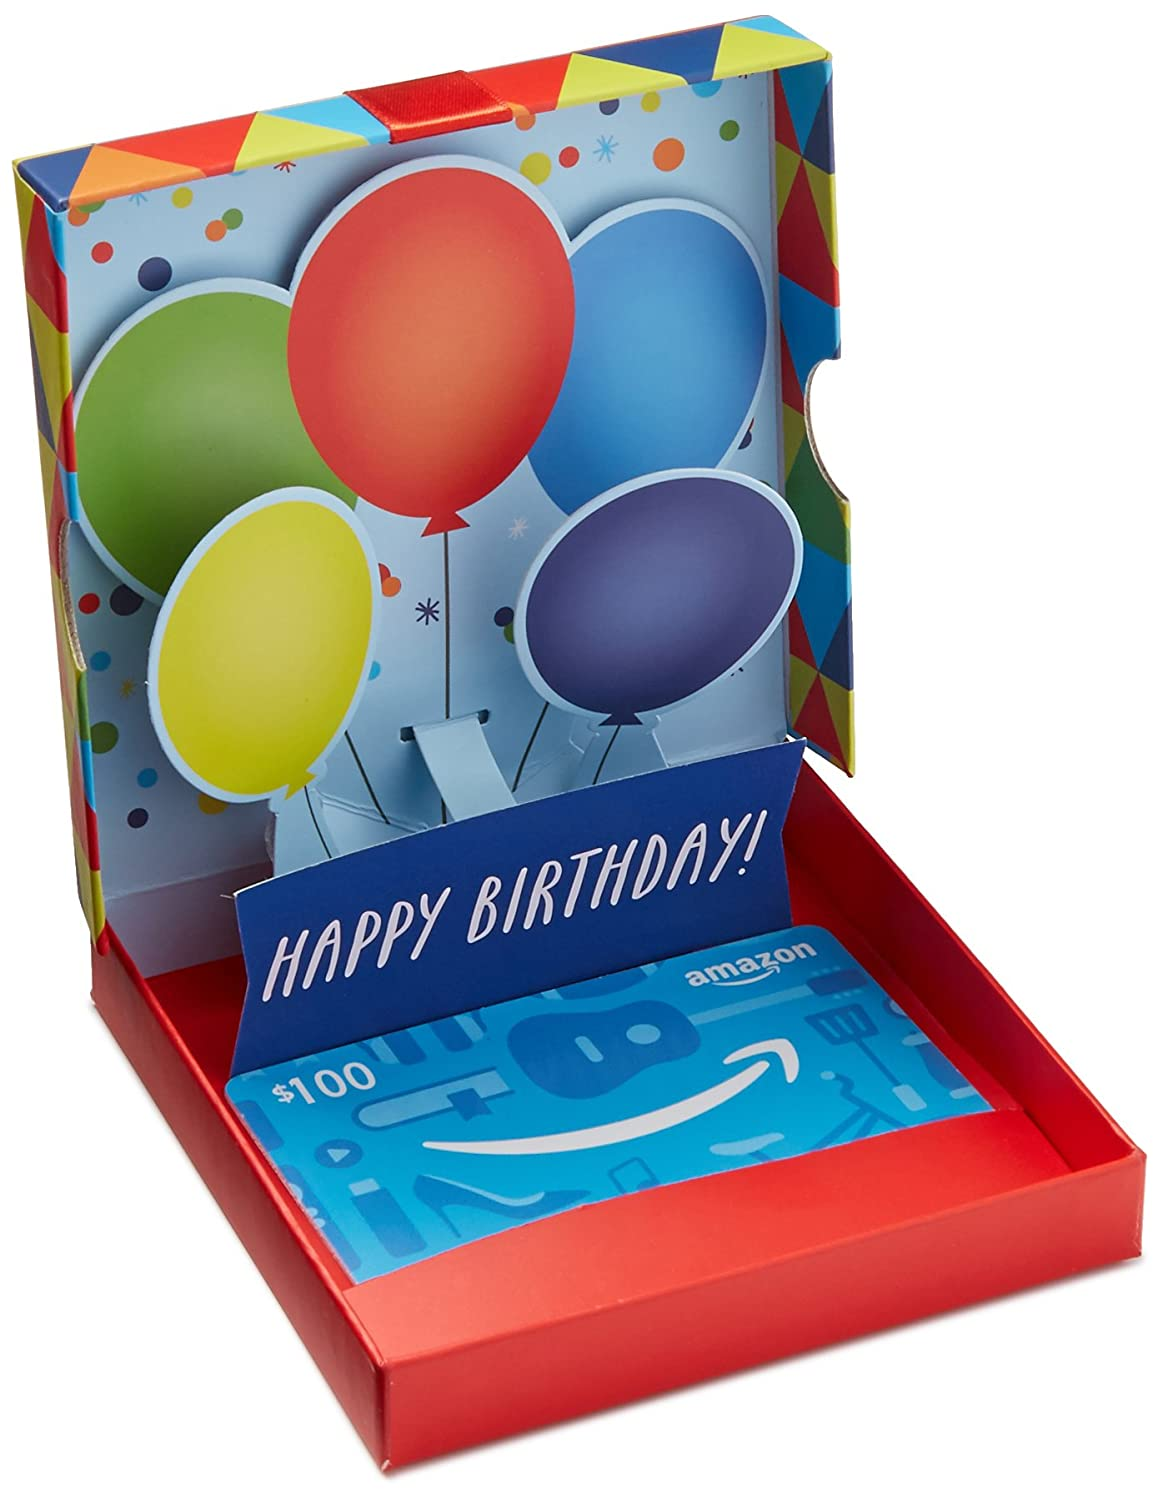 Amazon.com Gift Card for Any Amount in a Birthday Pop-Up Box VariableDenomination